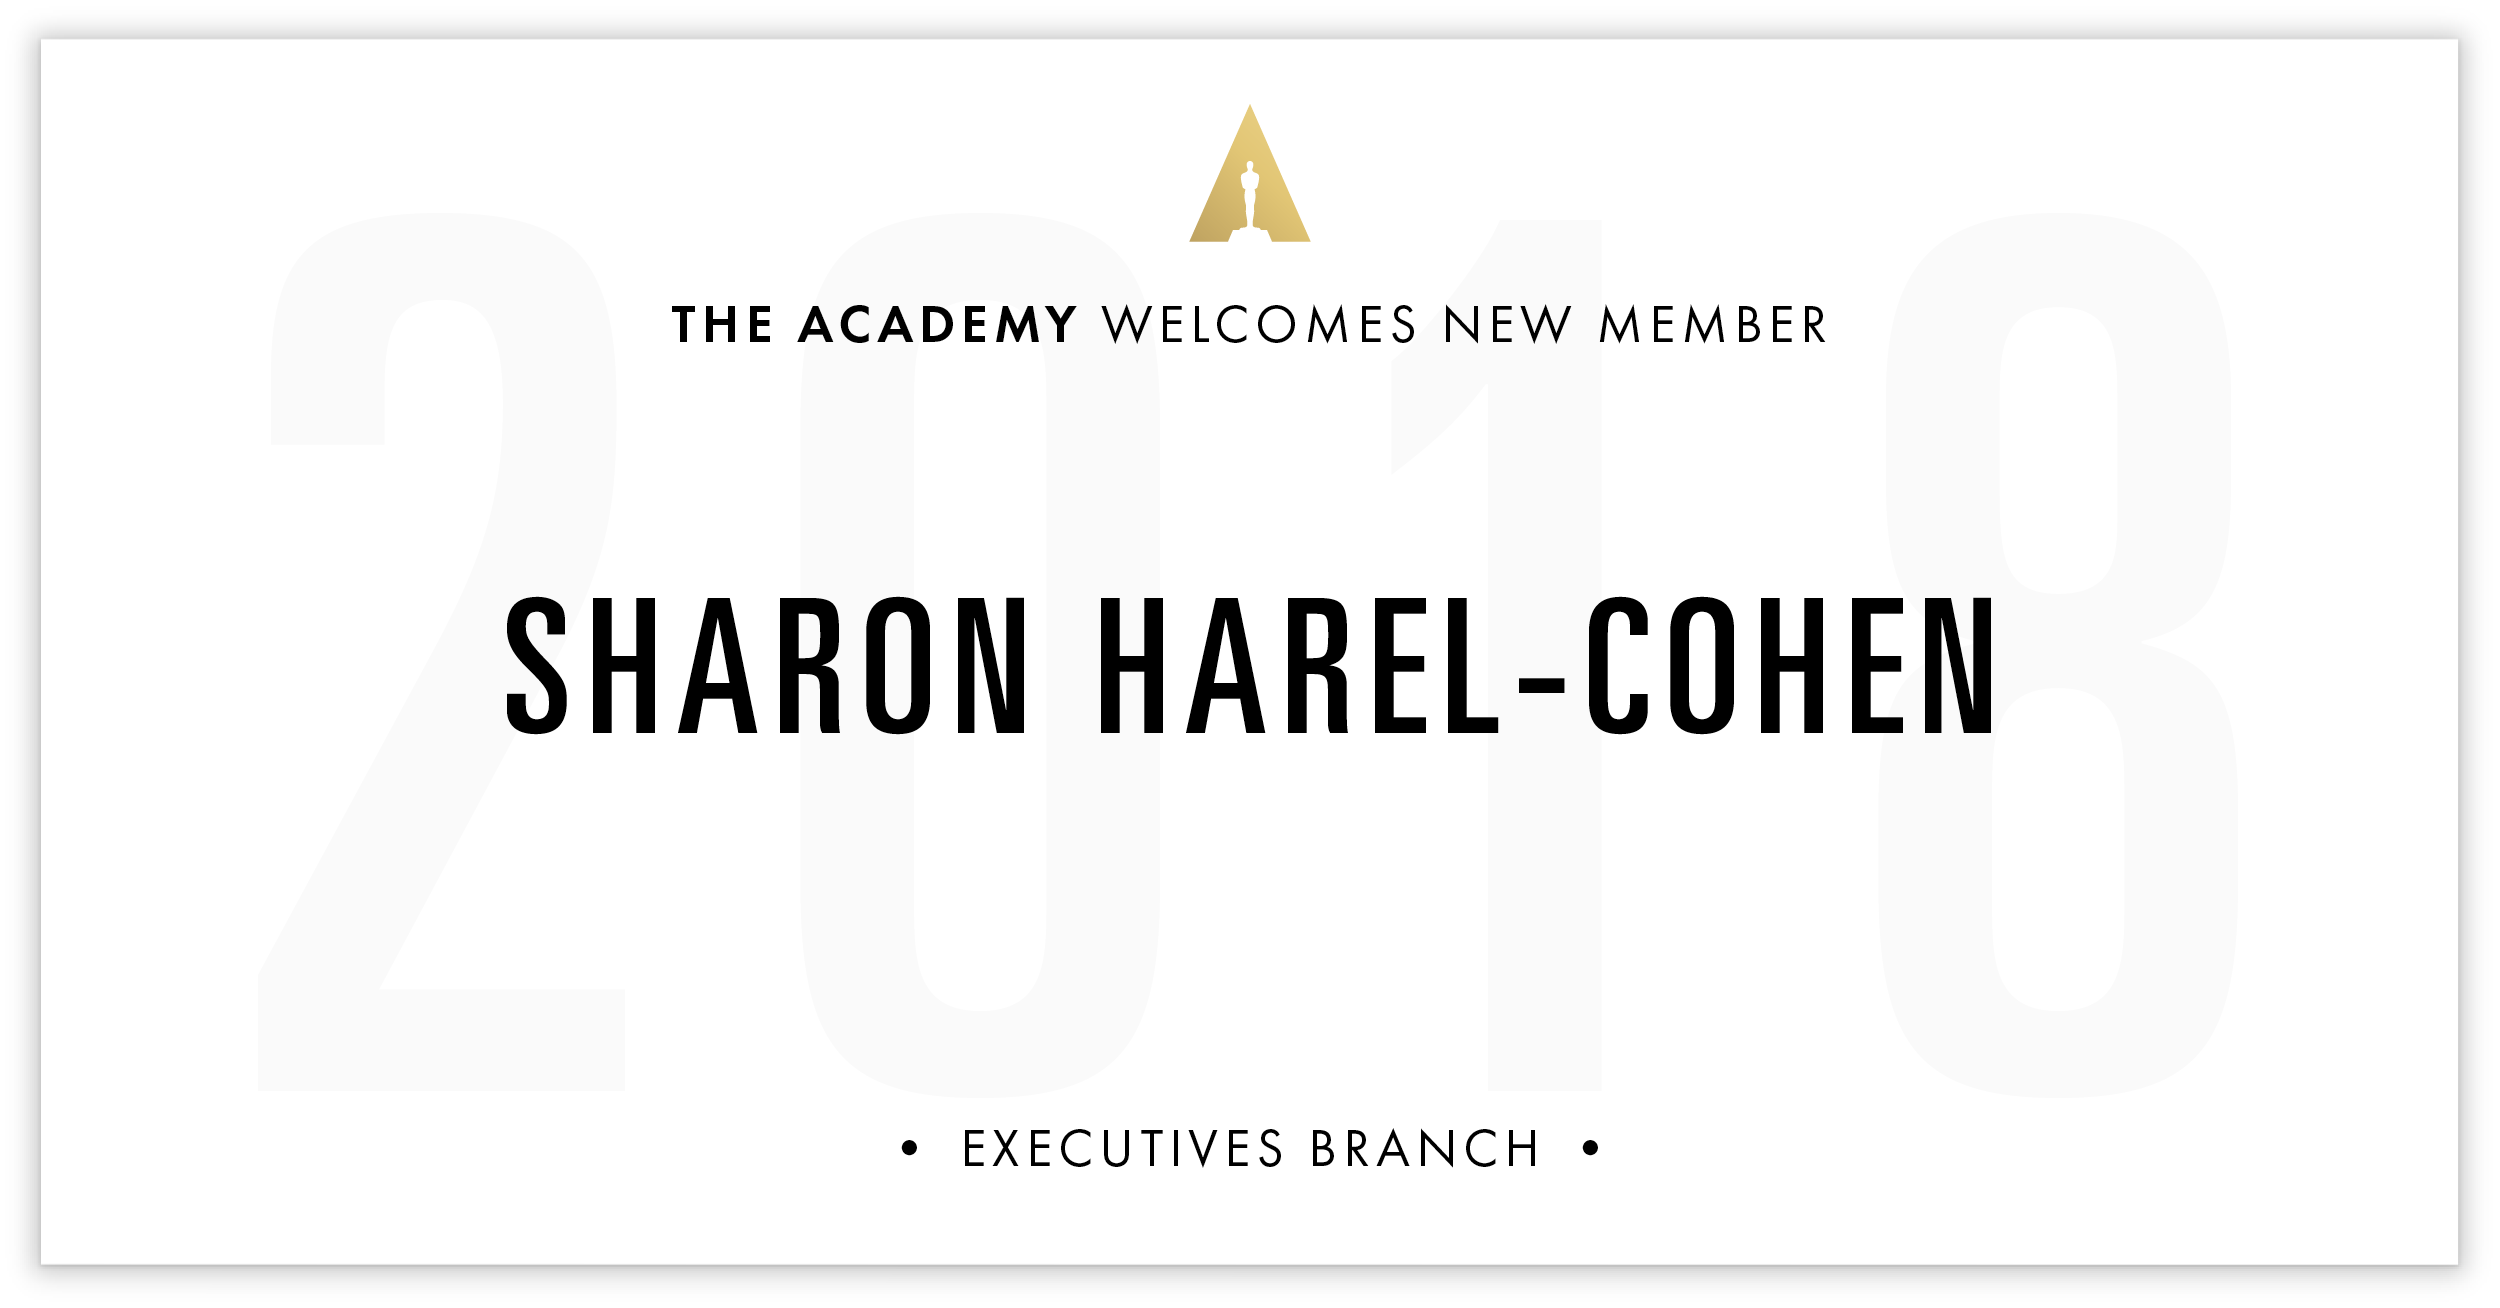 Sharon Harel-Cohen is invited!